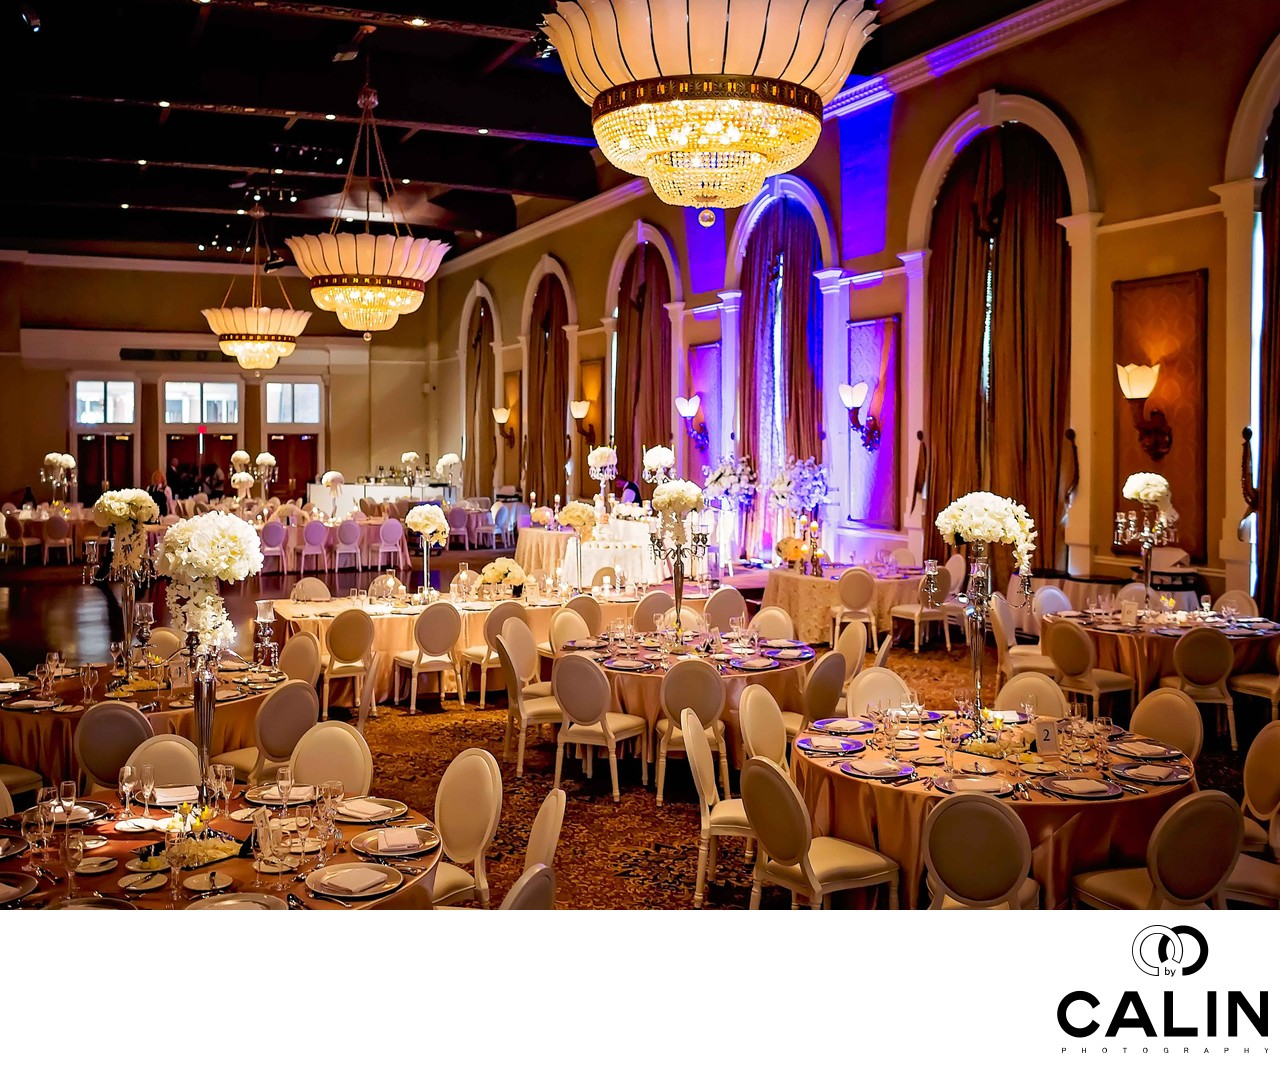 Top 50 Wedding Venues in Toronto (WITH PHOTOS) - Photography